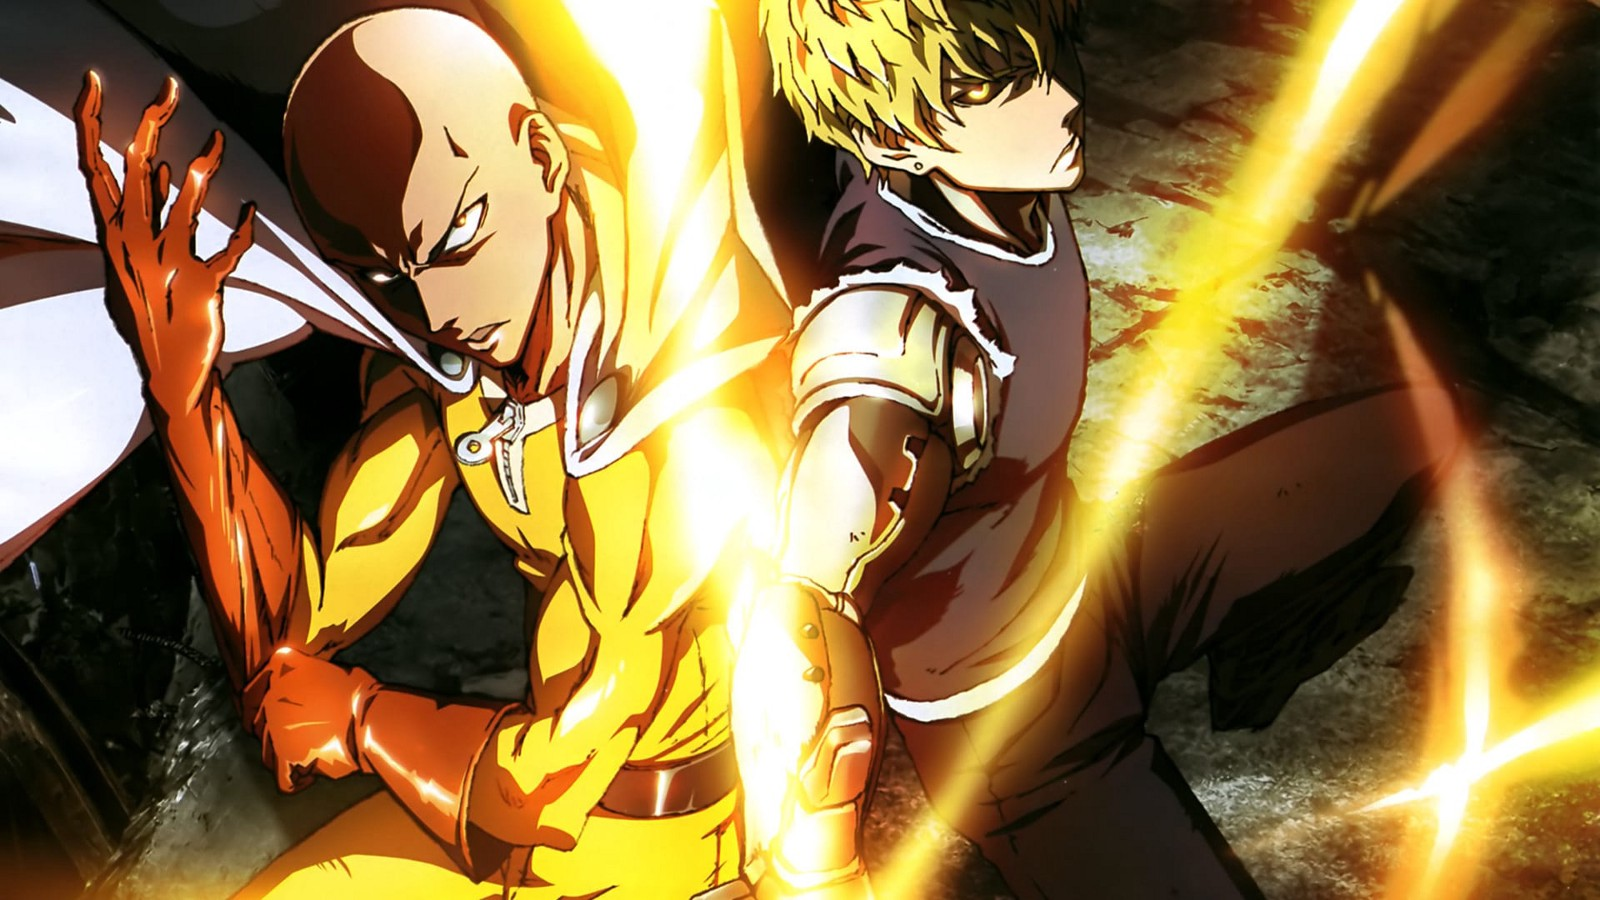 Anime one punch man season 2 ep 7 english subtitle